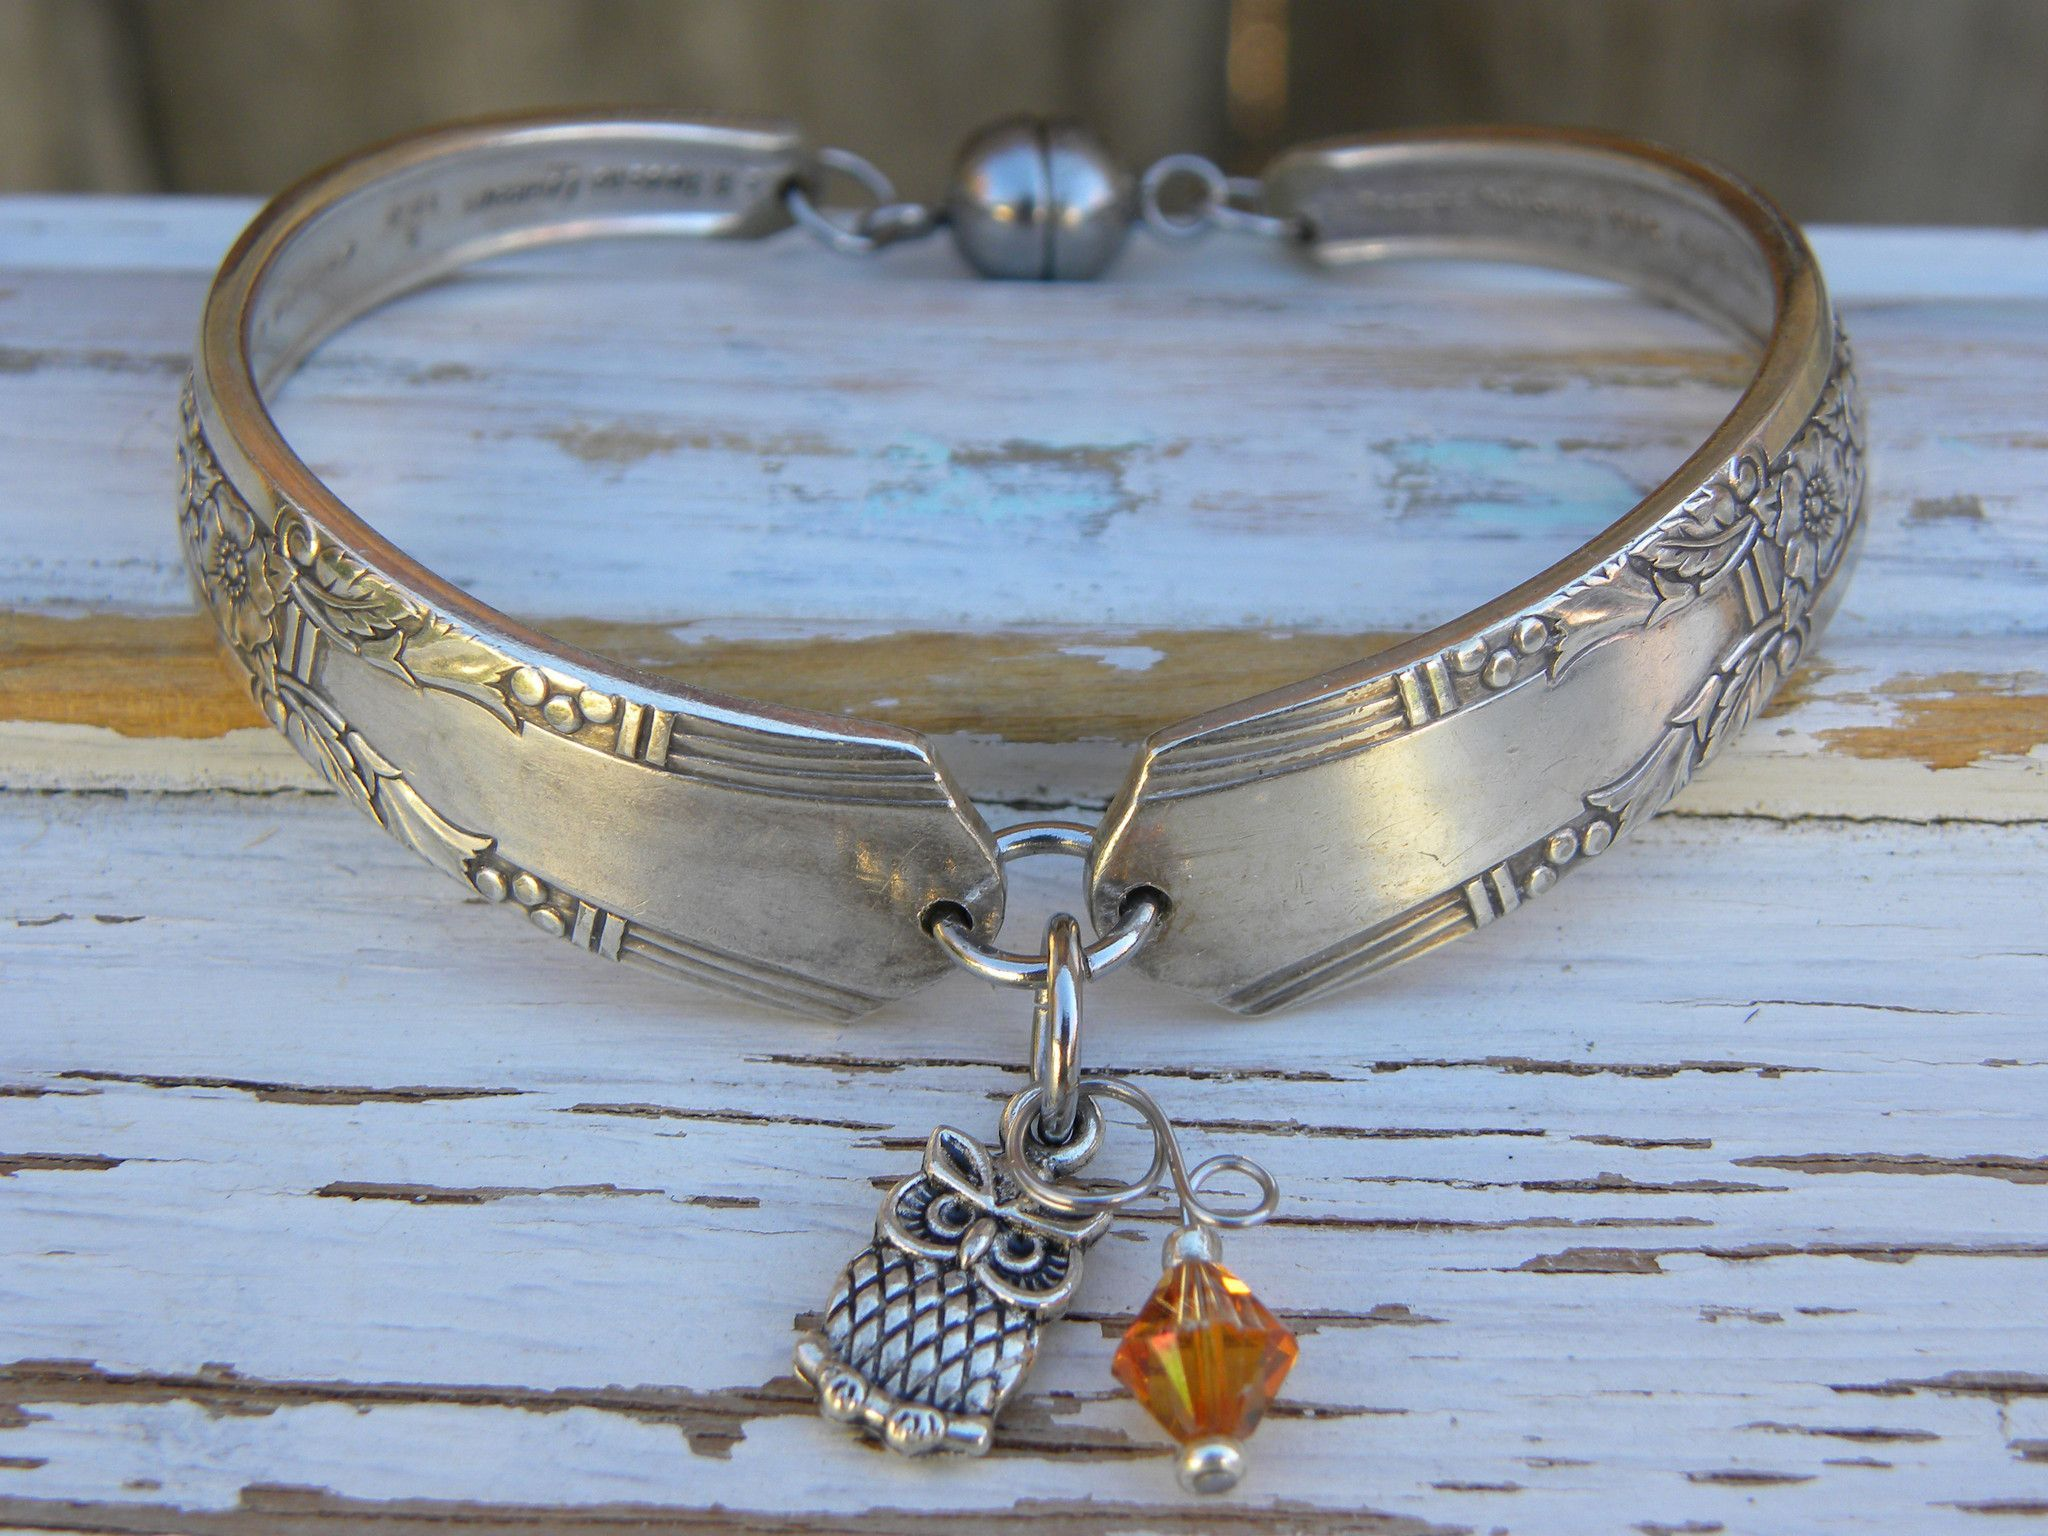 Spoon handle bracelet - owl charm - brown orange crystal bead - silver vintage spoon handles - your color - magnetic clasp - Size 6 3/4